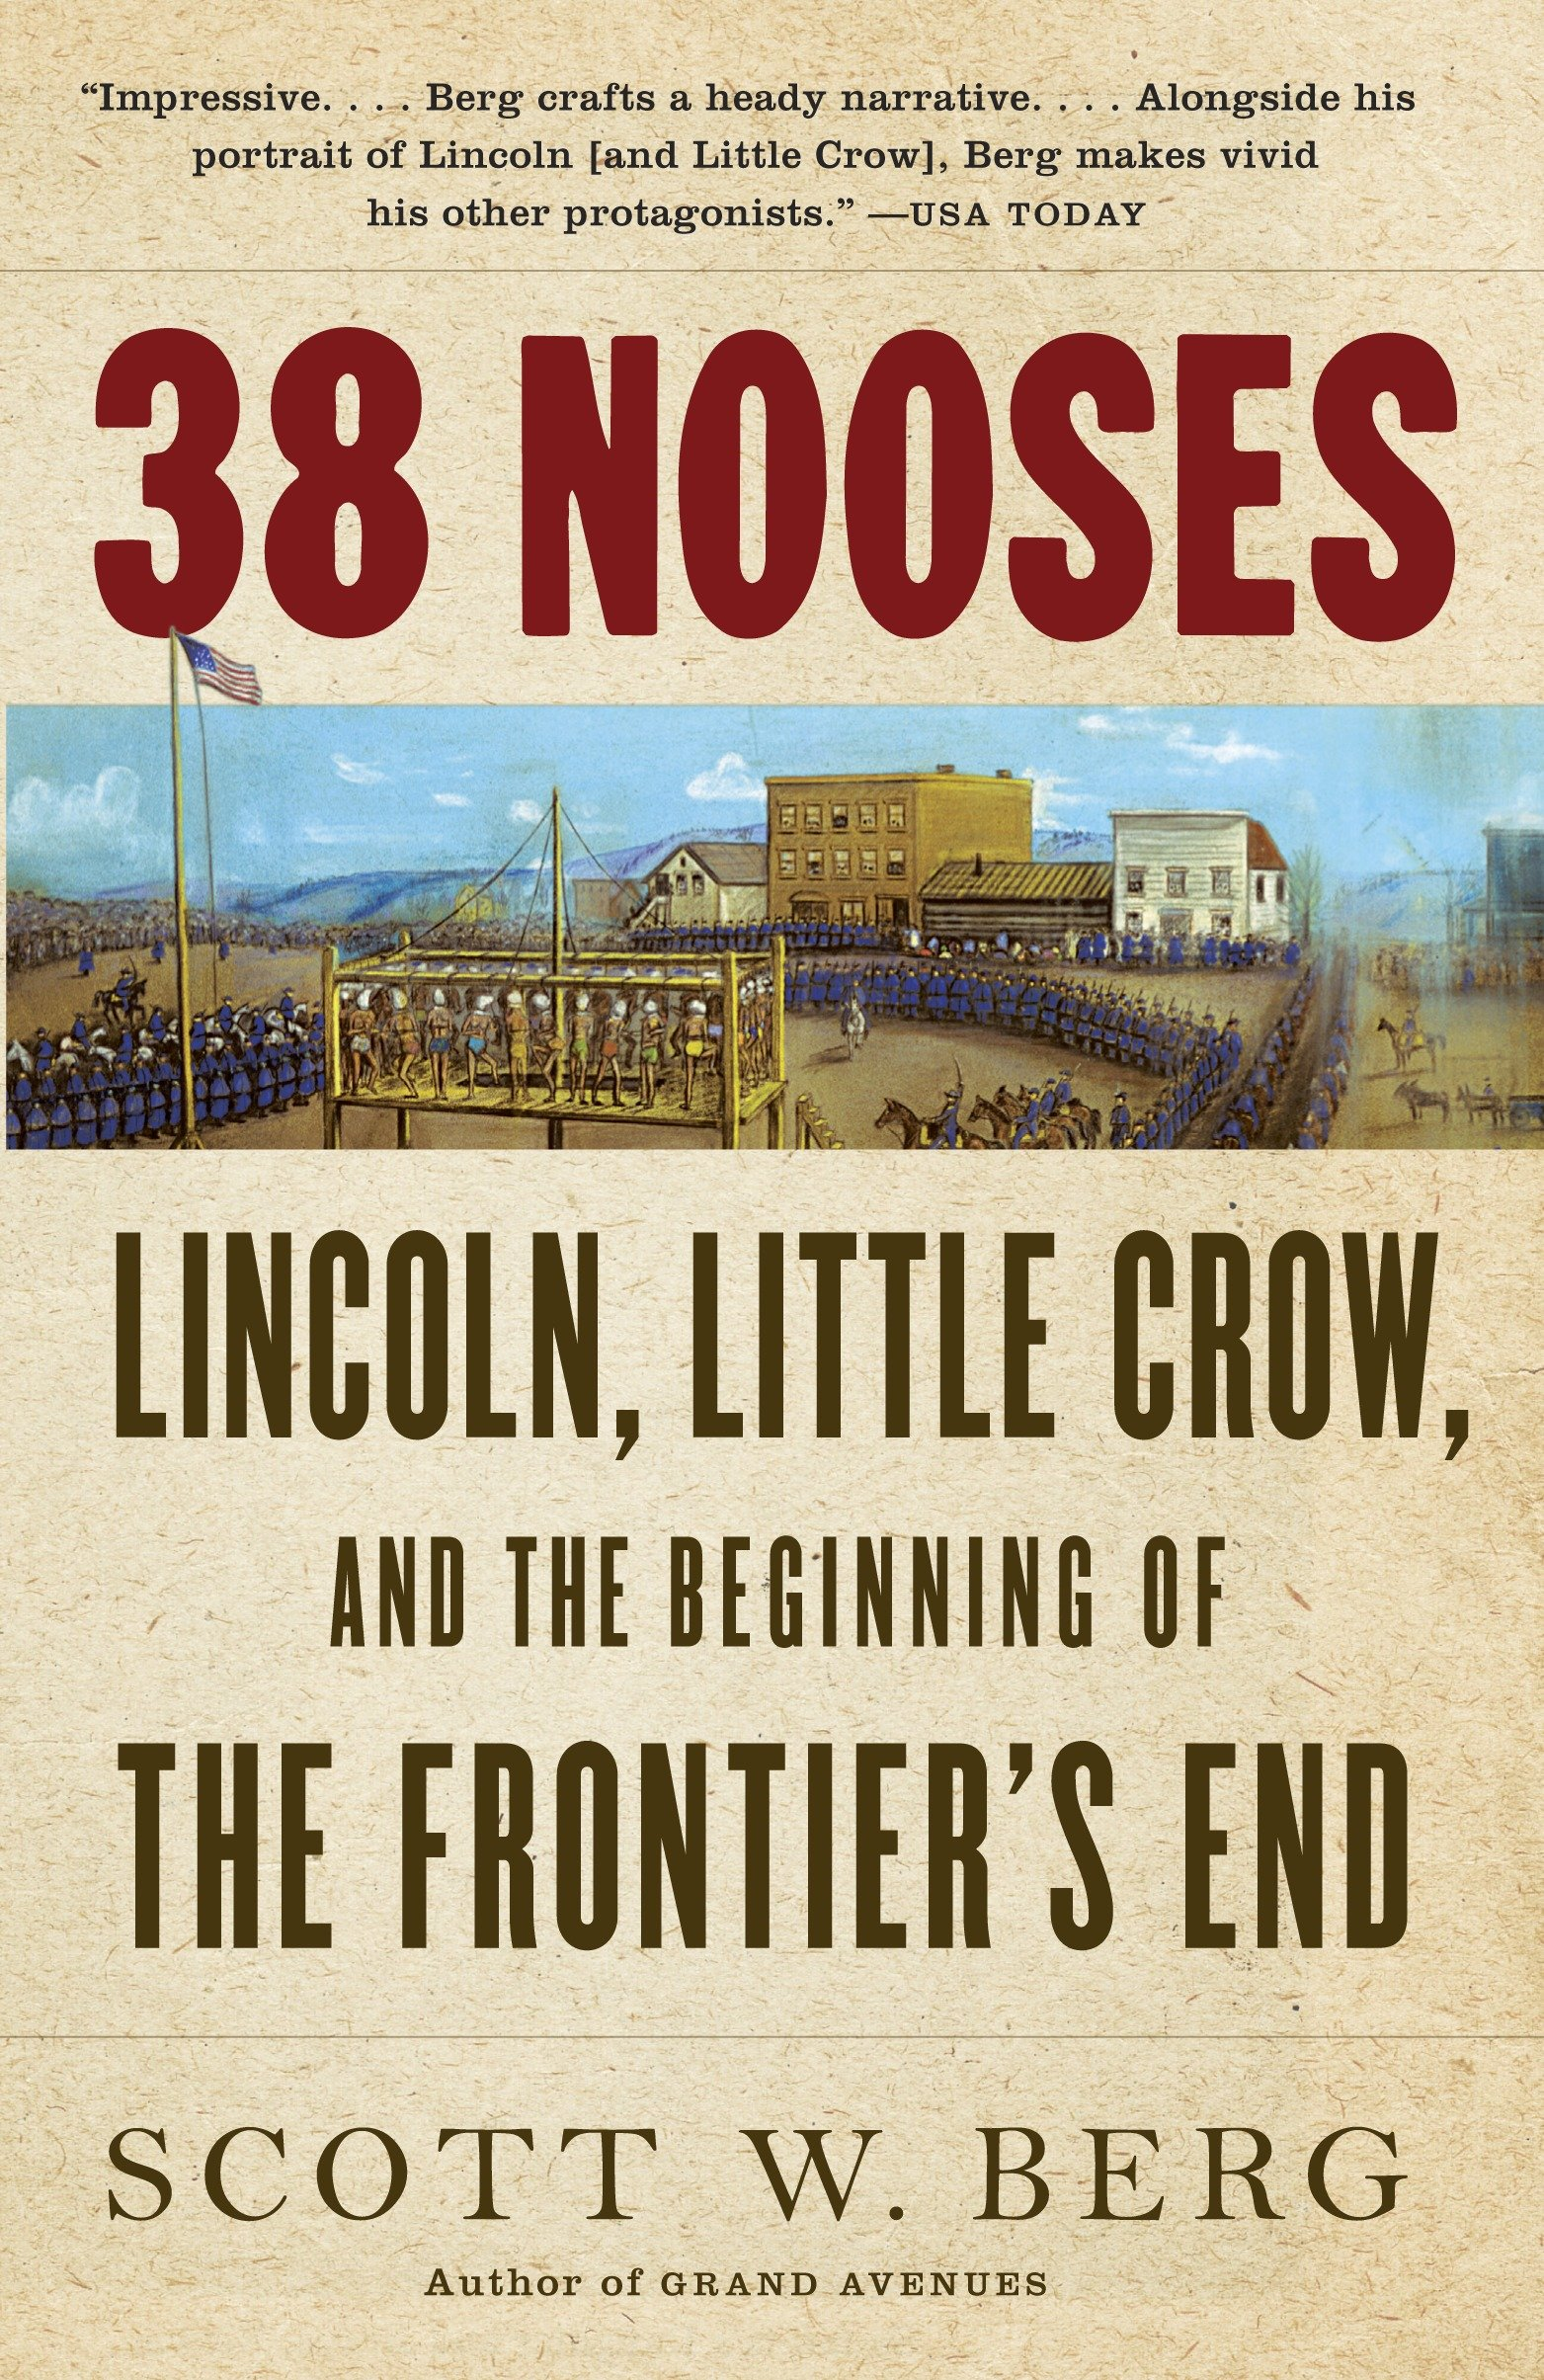 38 Nooses Lincoln, Little Crow, and the beginning of the frontier's end